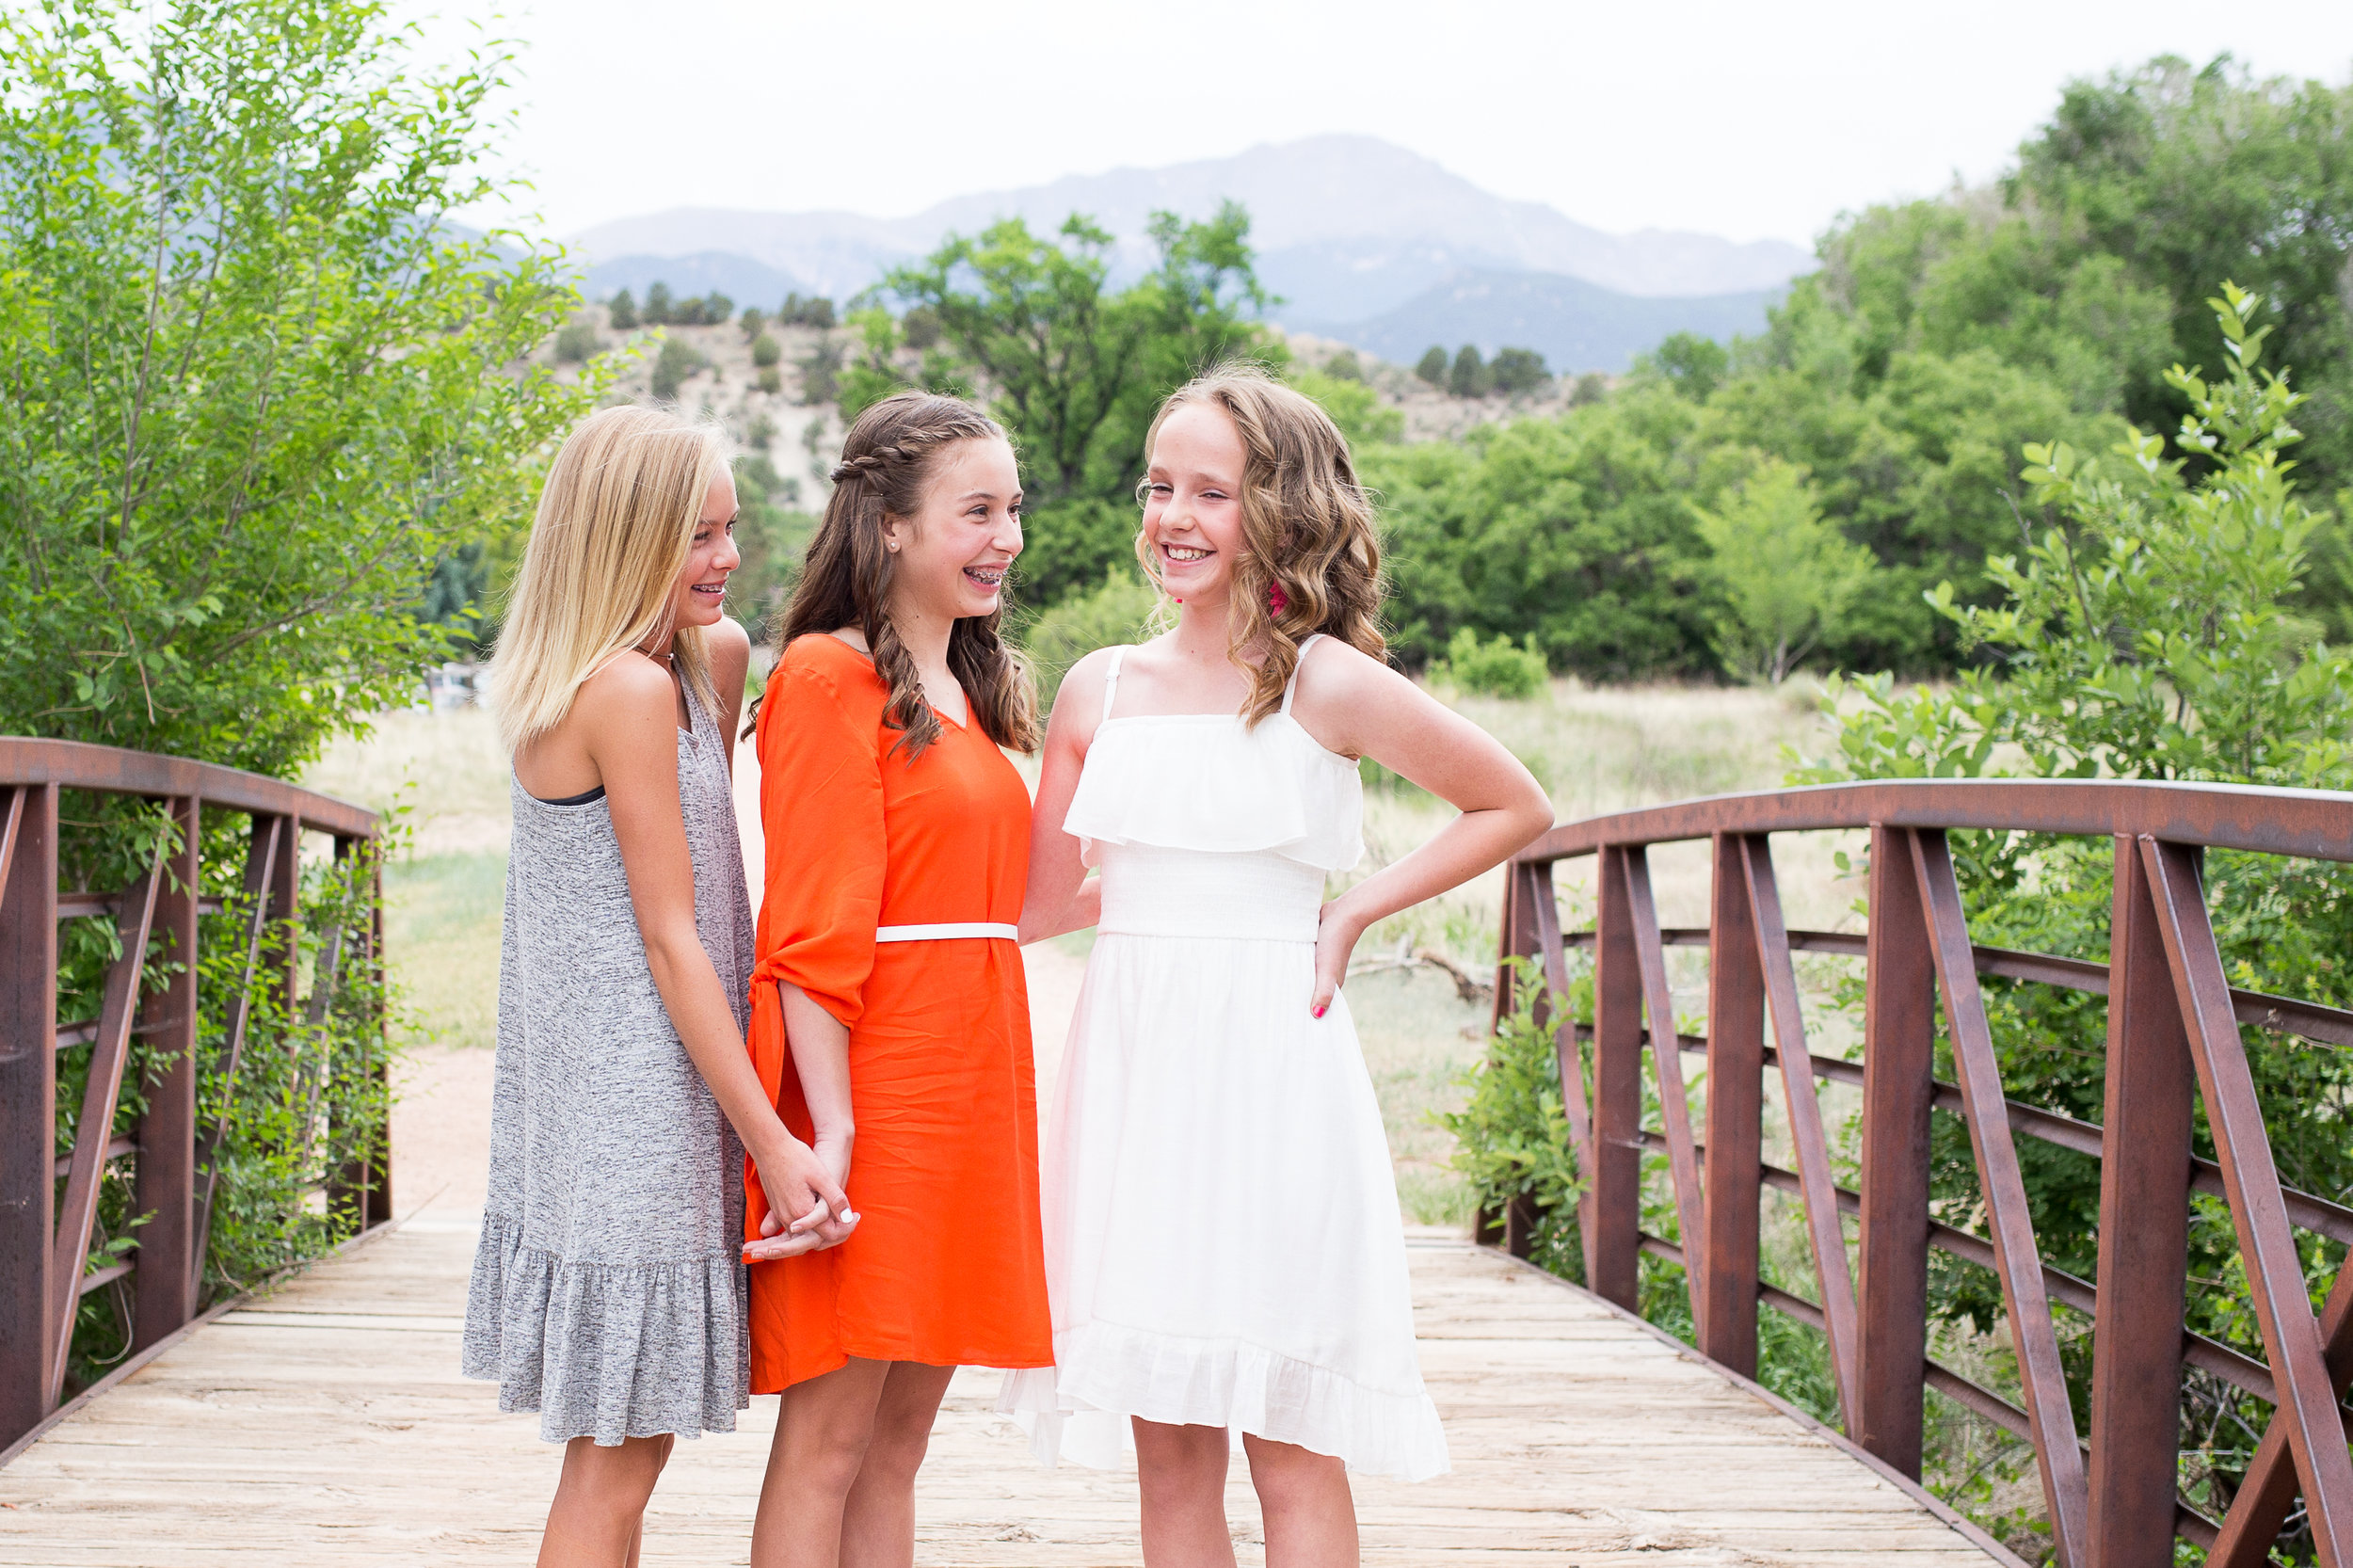 Colorado Springs Senior and Tween Photographer | Colorado  Springs Tween and Senior Photography | Stacy Carosa Photography | Middle School friends standing on a bridge